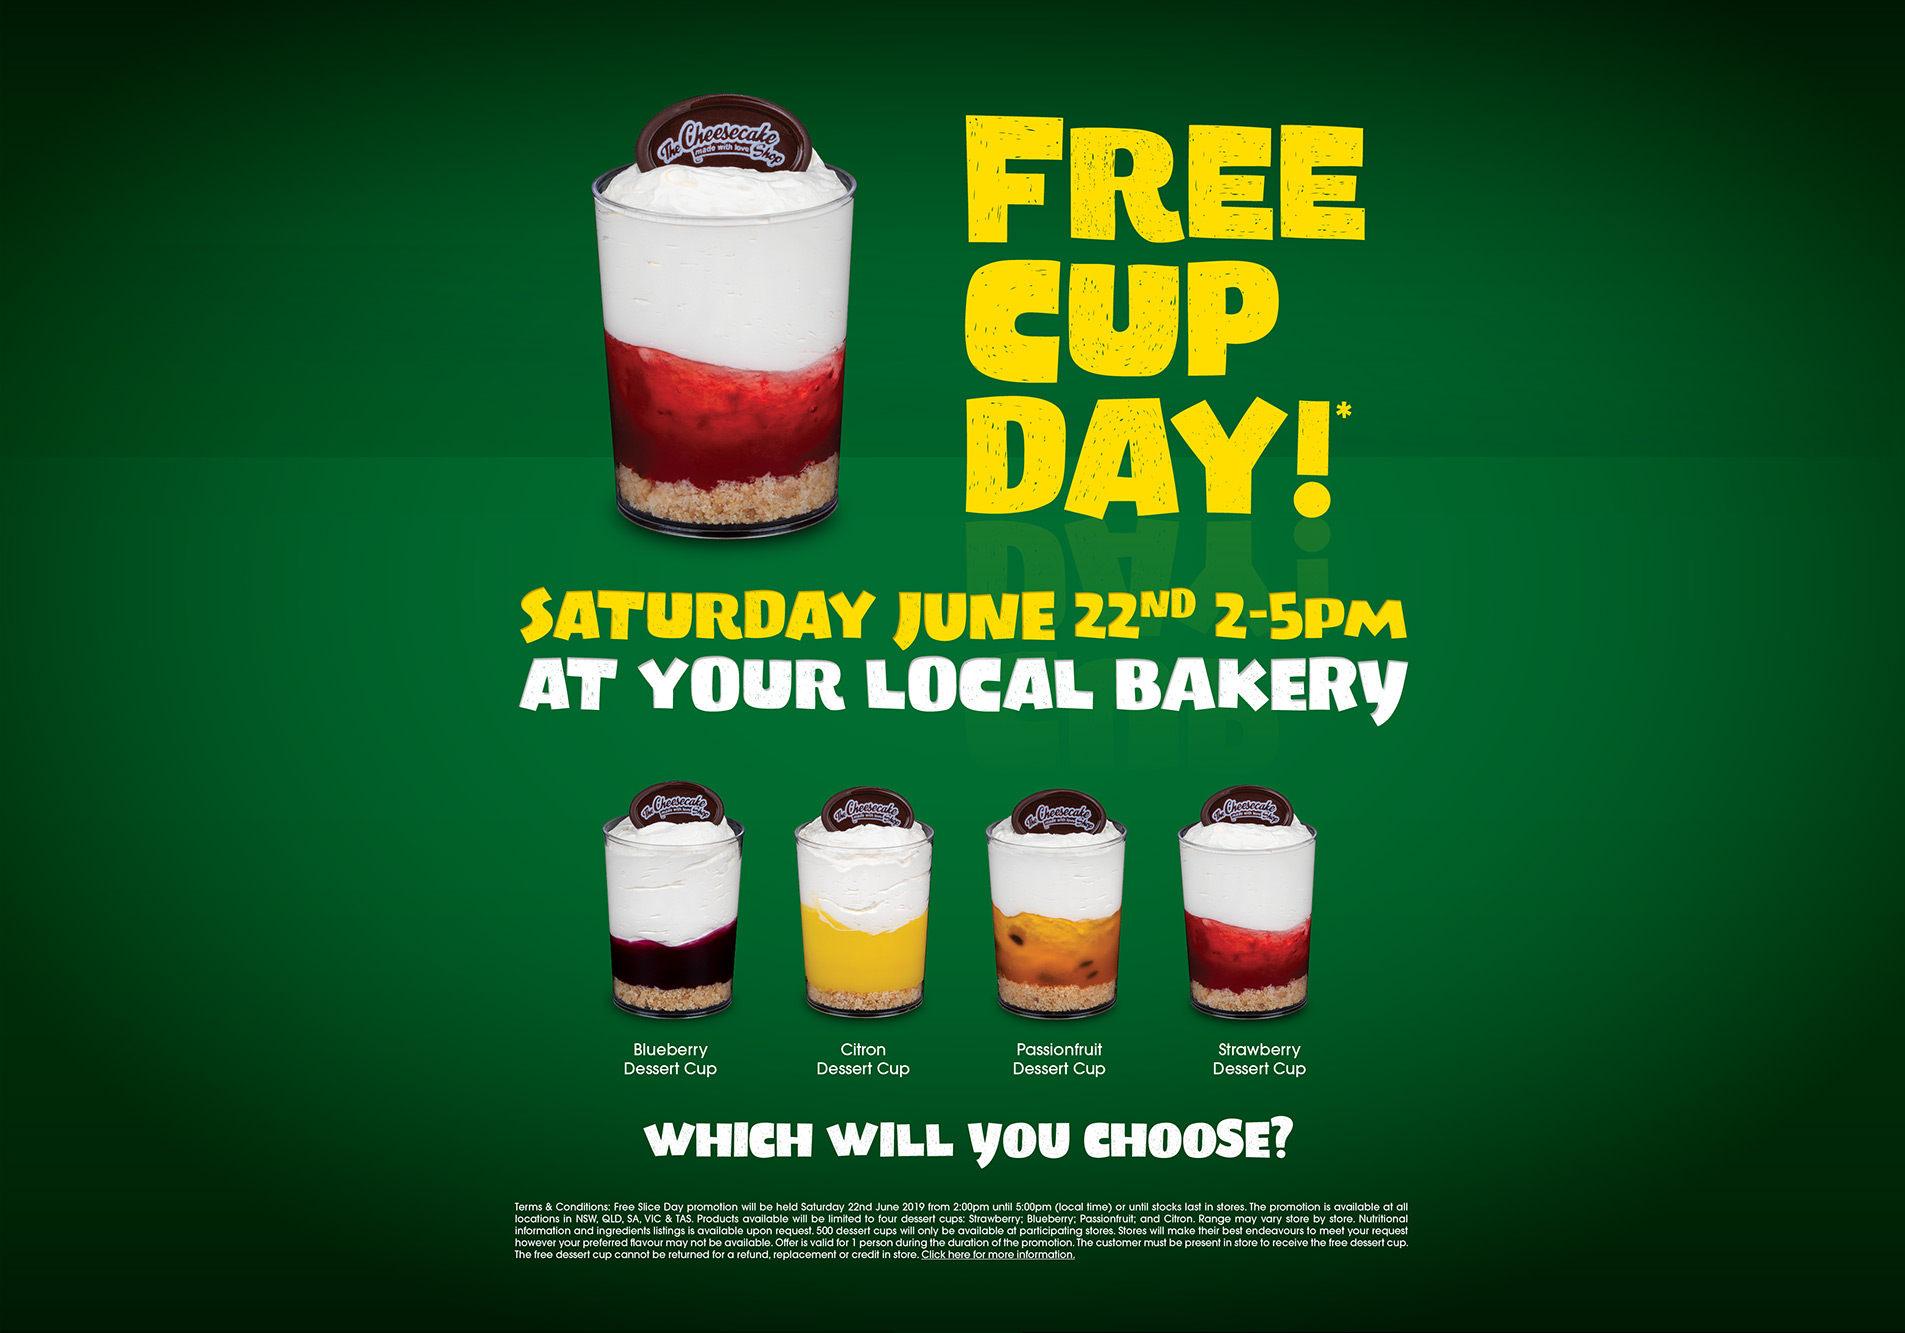 Free cup day